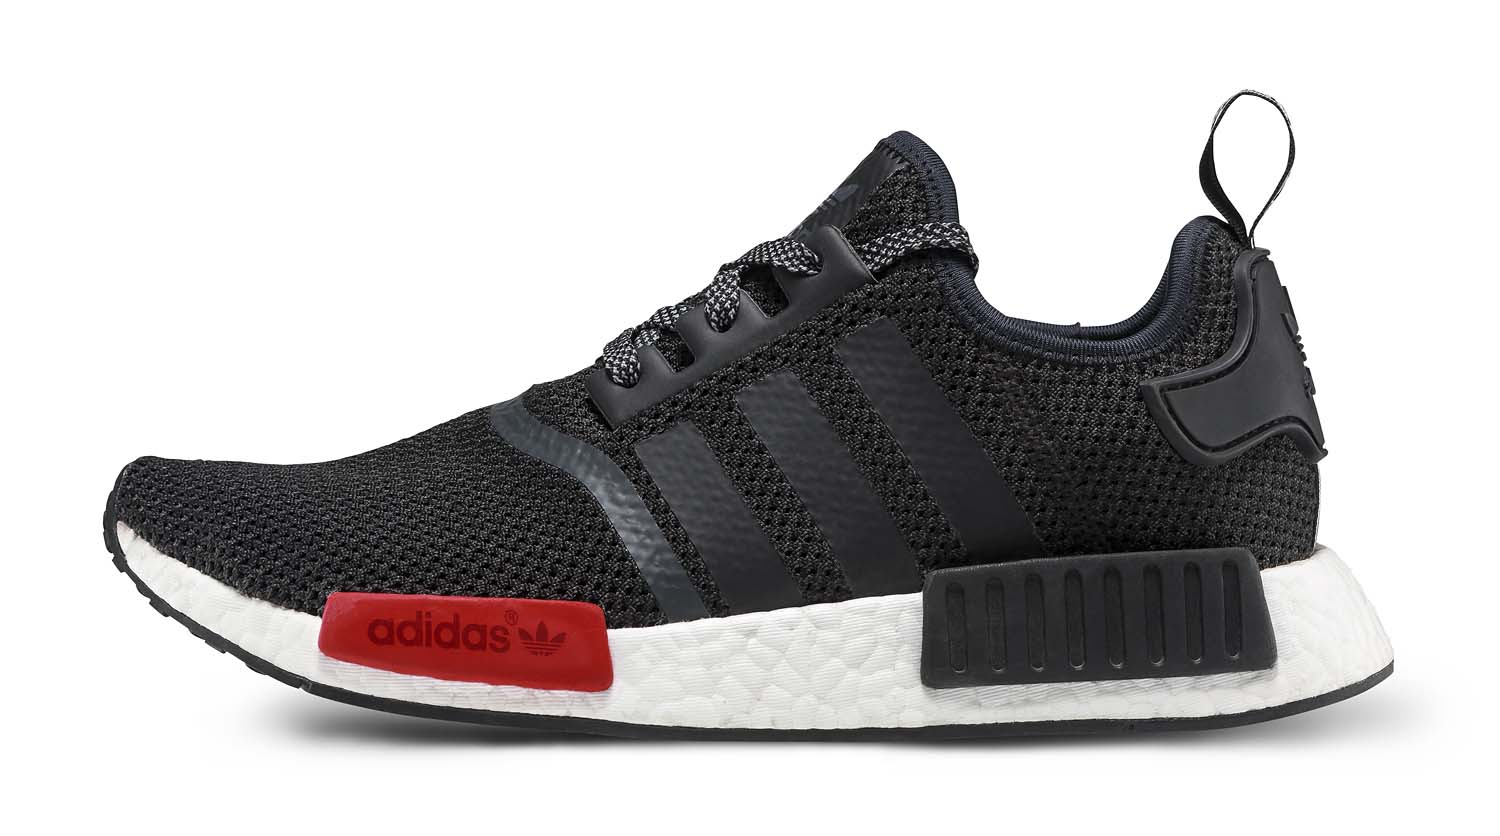 adidas-nmd-r1-core-black-dark-grey-white-foot-locker